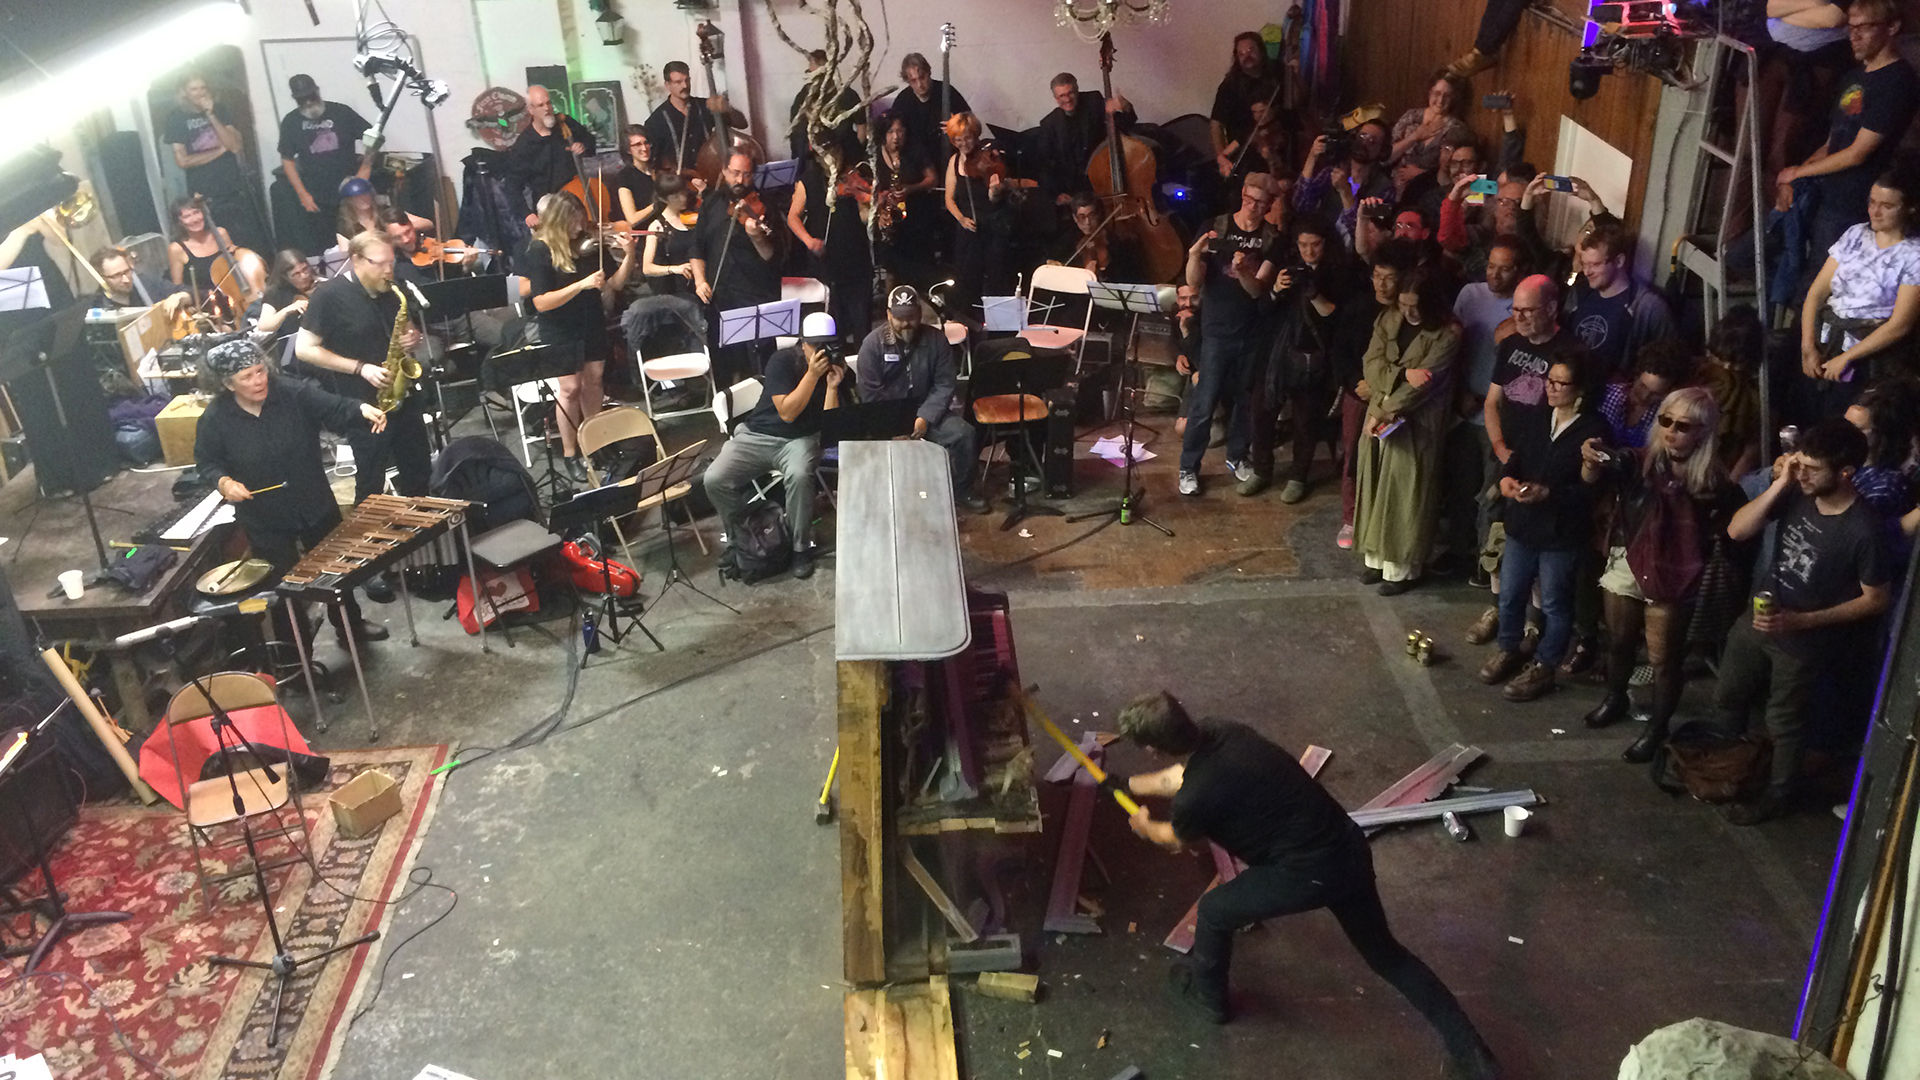 Can You Still Smash a Piano and Call it Art in New Oakland?